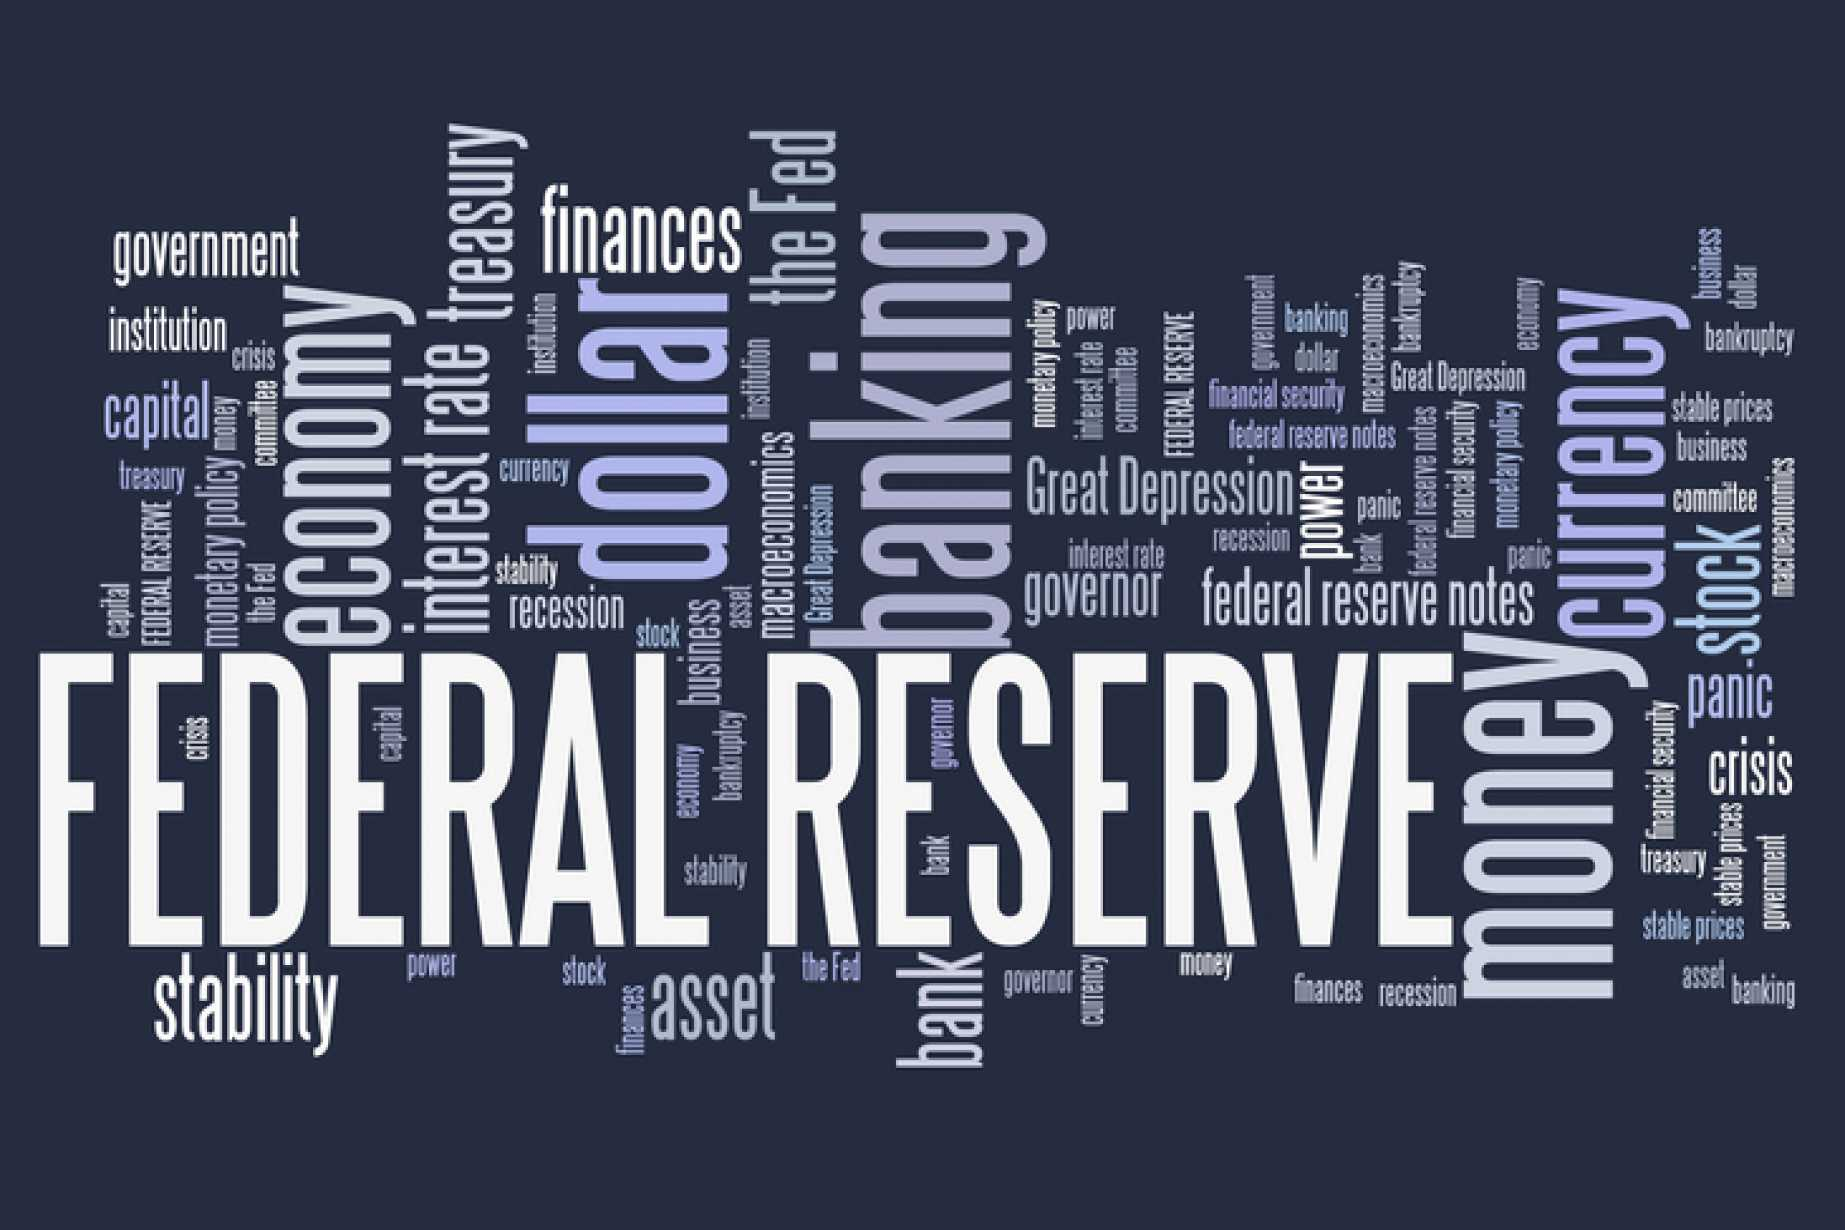 federal reserve holiday schedule 2020